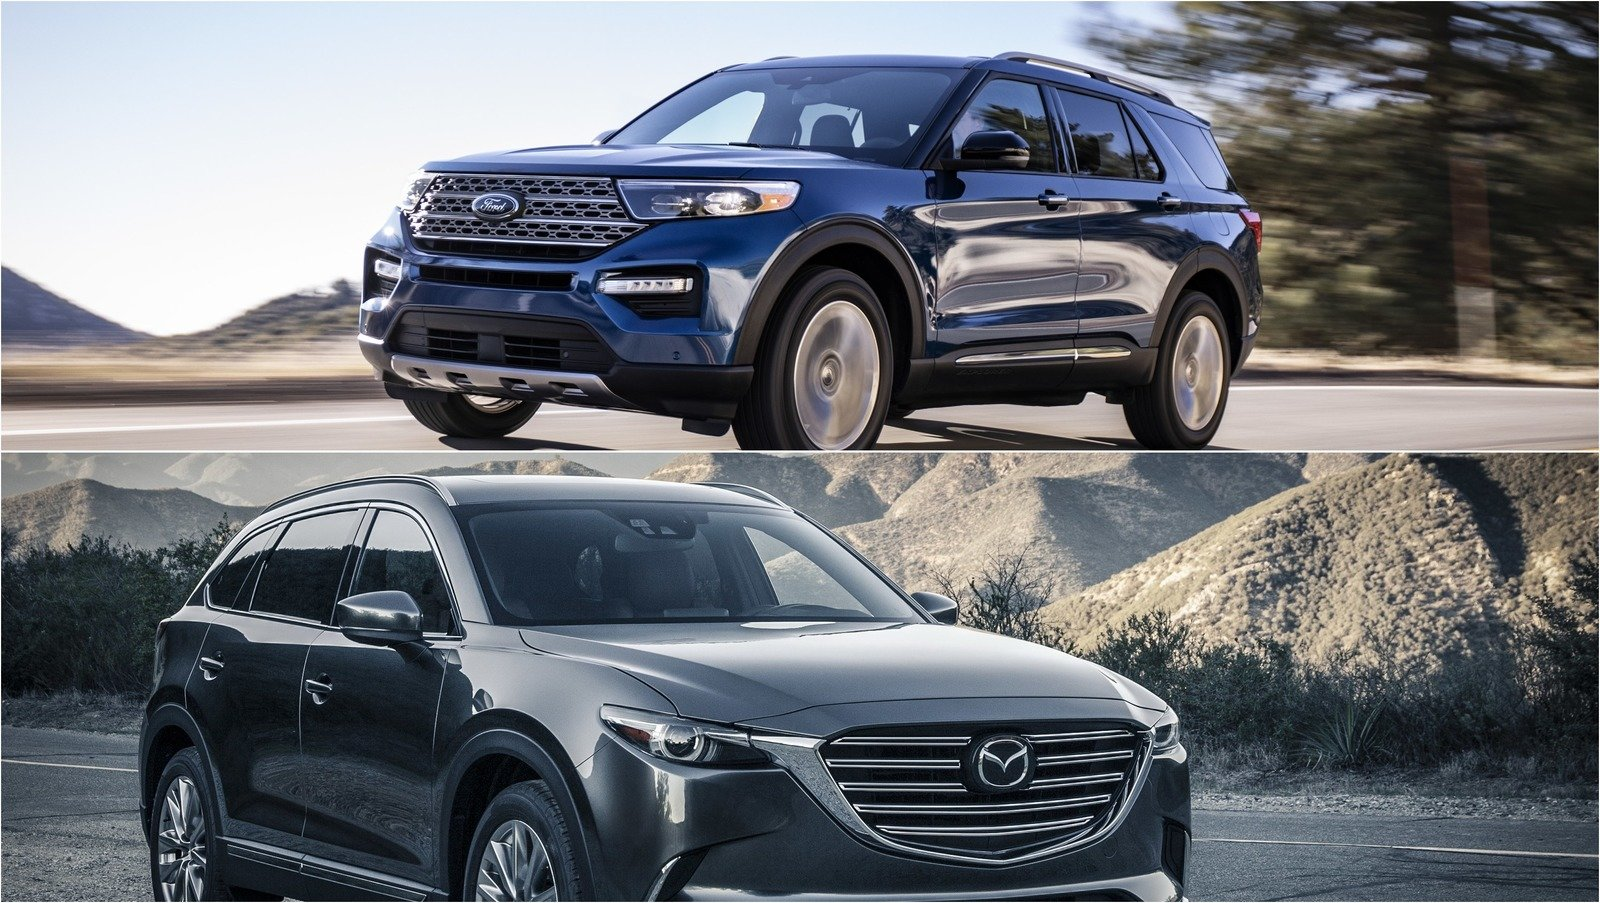 40 The 2020 Mazda CX 9s Images